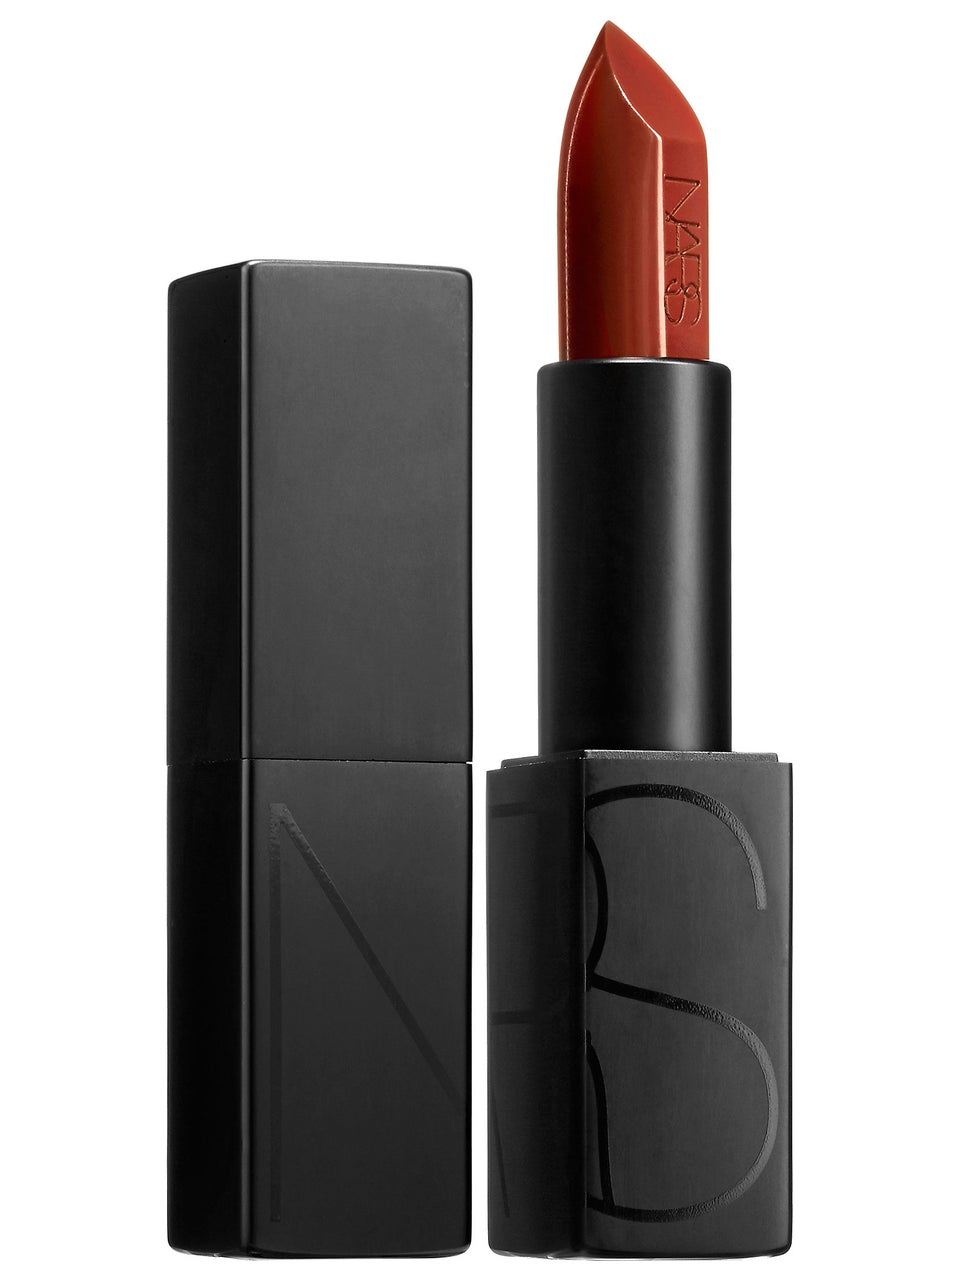 This Is the Most Popular Lipstick On Polyvore—And It's Not MAC